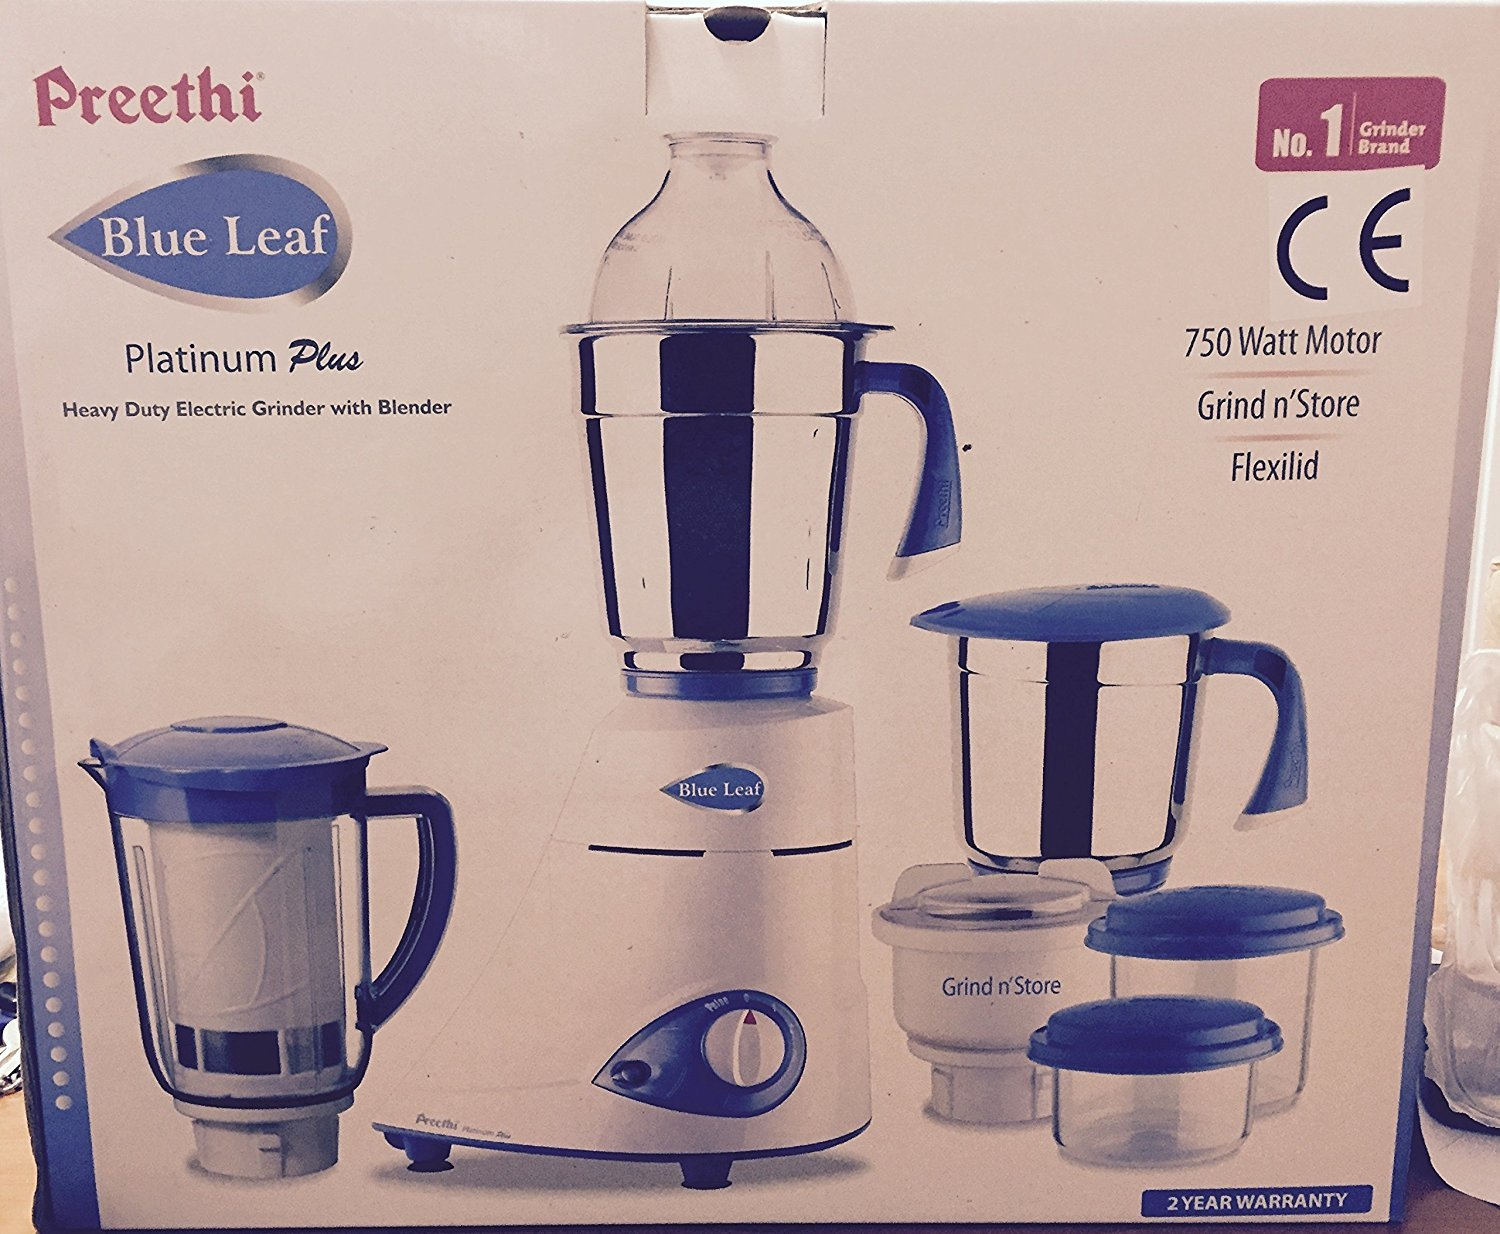 Preethi Blue Leaf - Platinum PLUS Wet and Dry Heavy Duty Electric Grinder - 750 Watts / 100% Stainless Steel Jars and Blades FREE UK POSTAGE